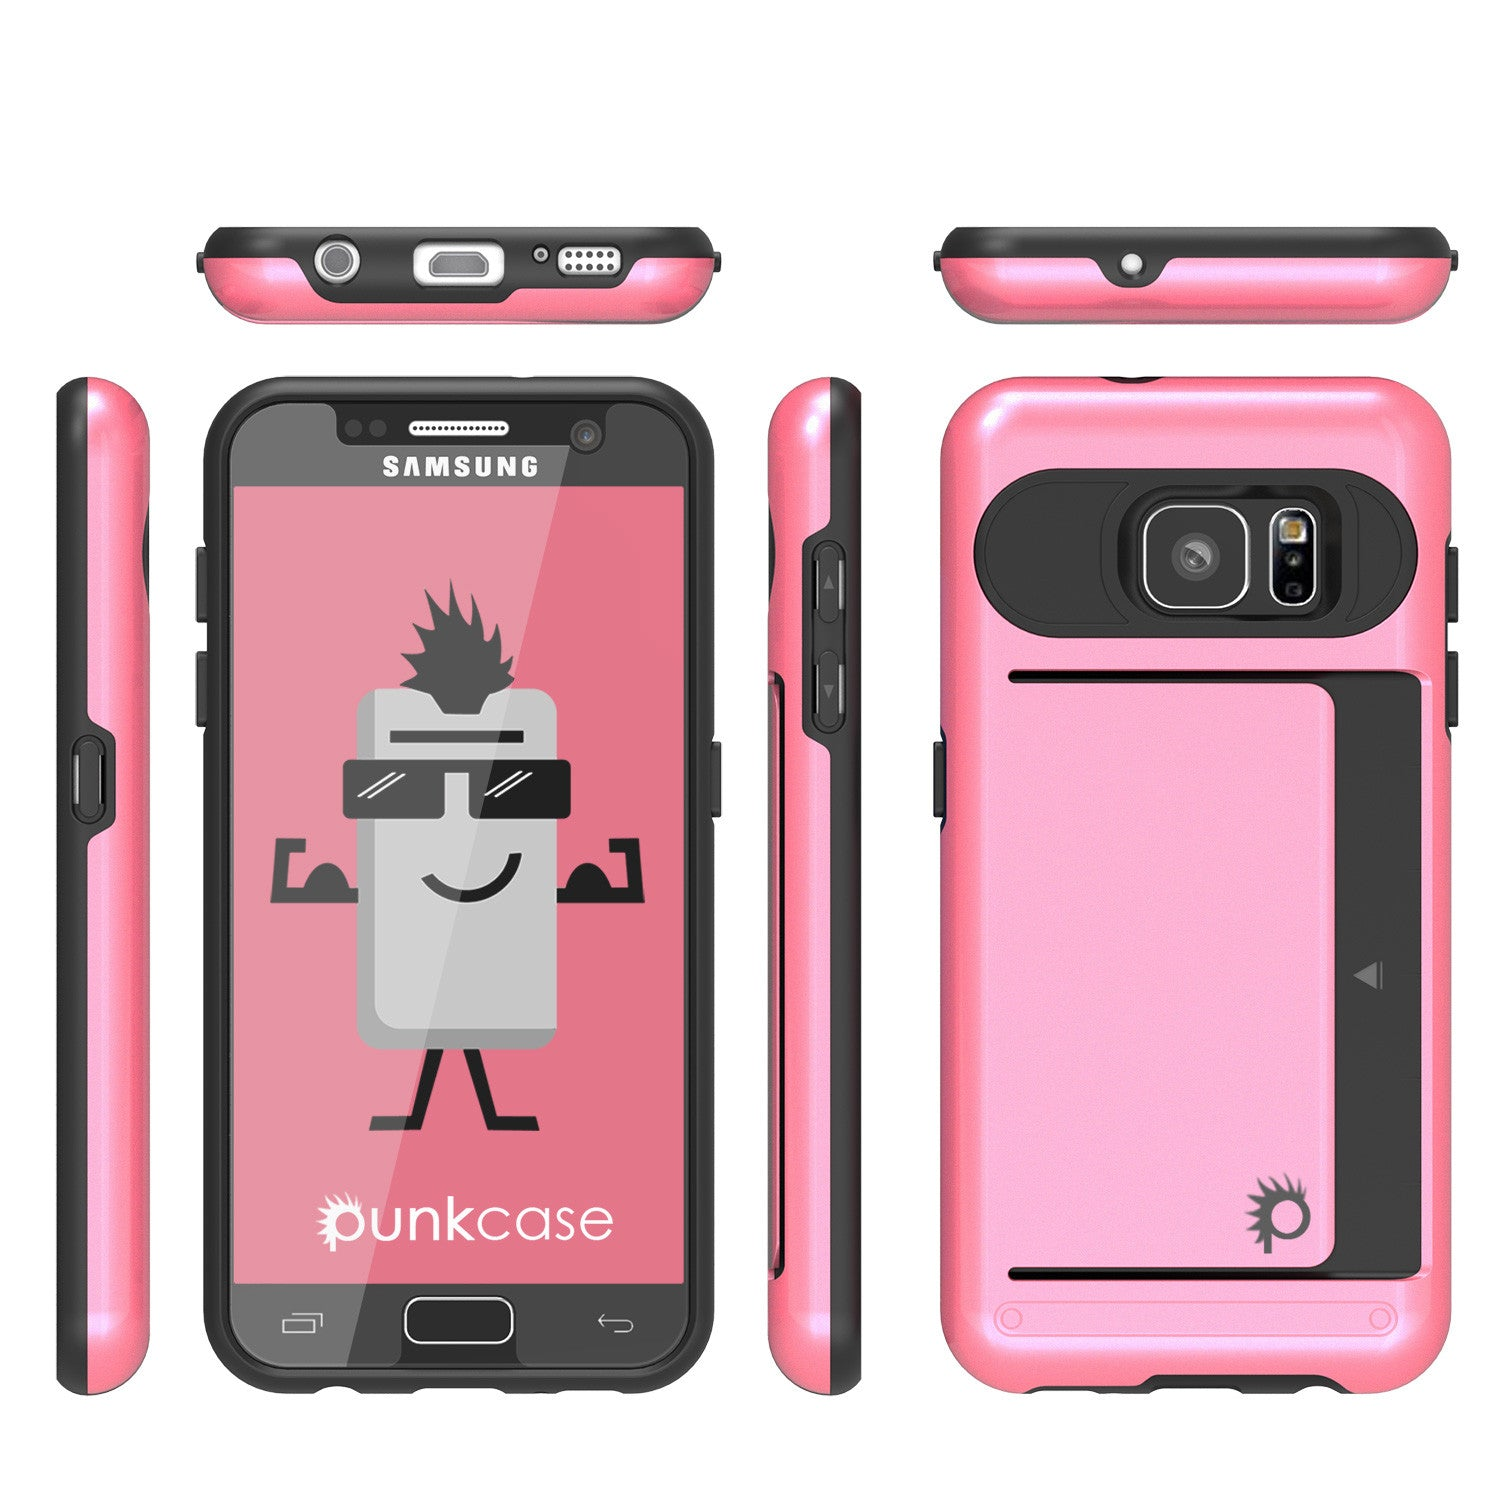 Galaxy s7 Case PunkCase CLUTCH Pink Series Slim Armor Soft Cover Case w/ Tempered Glass